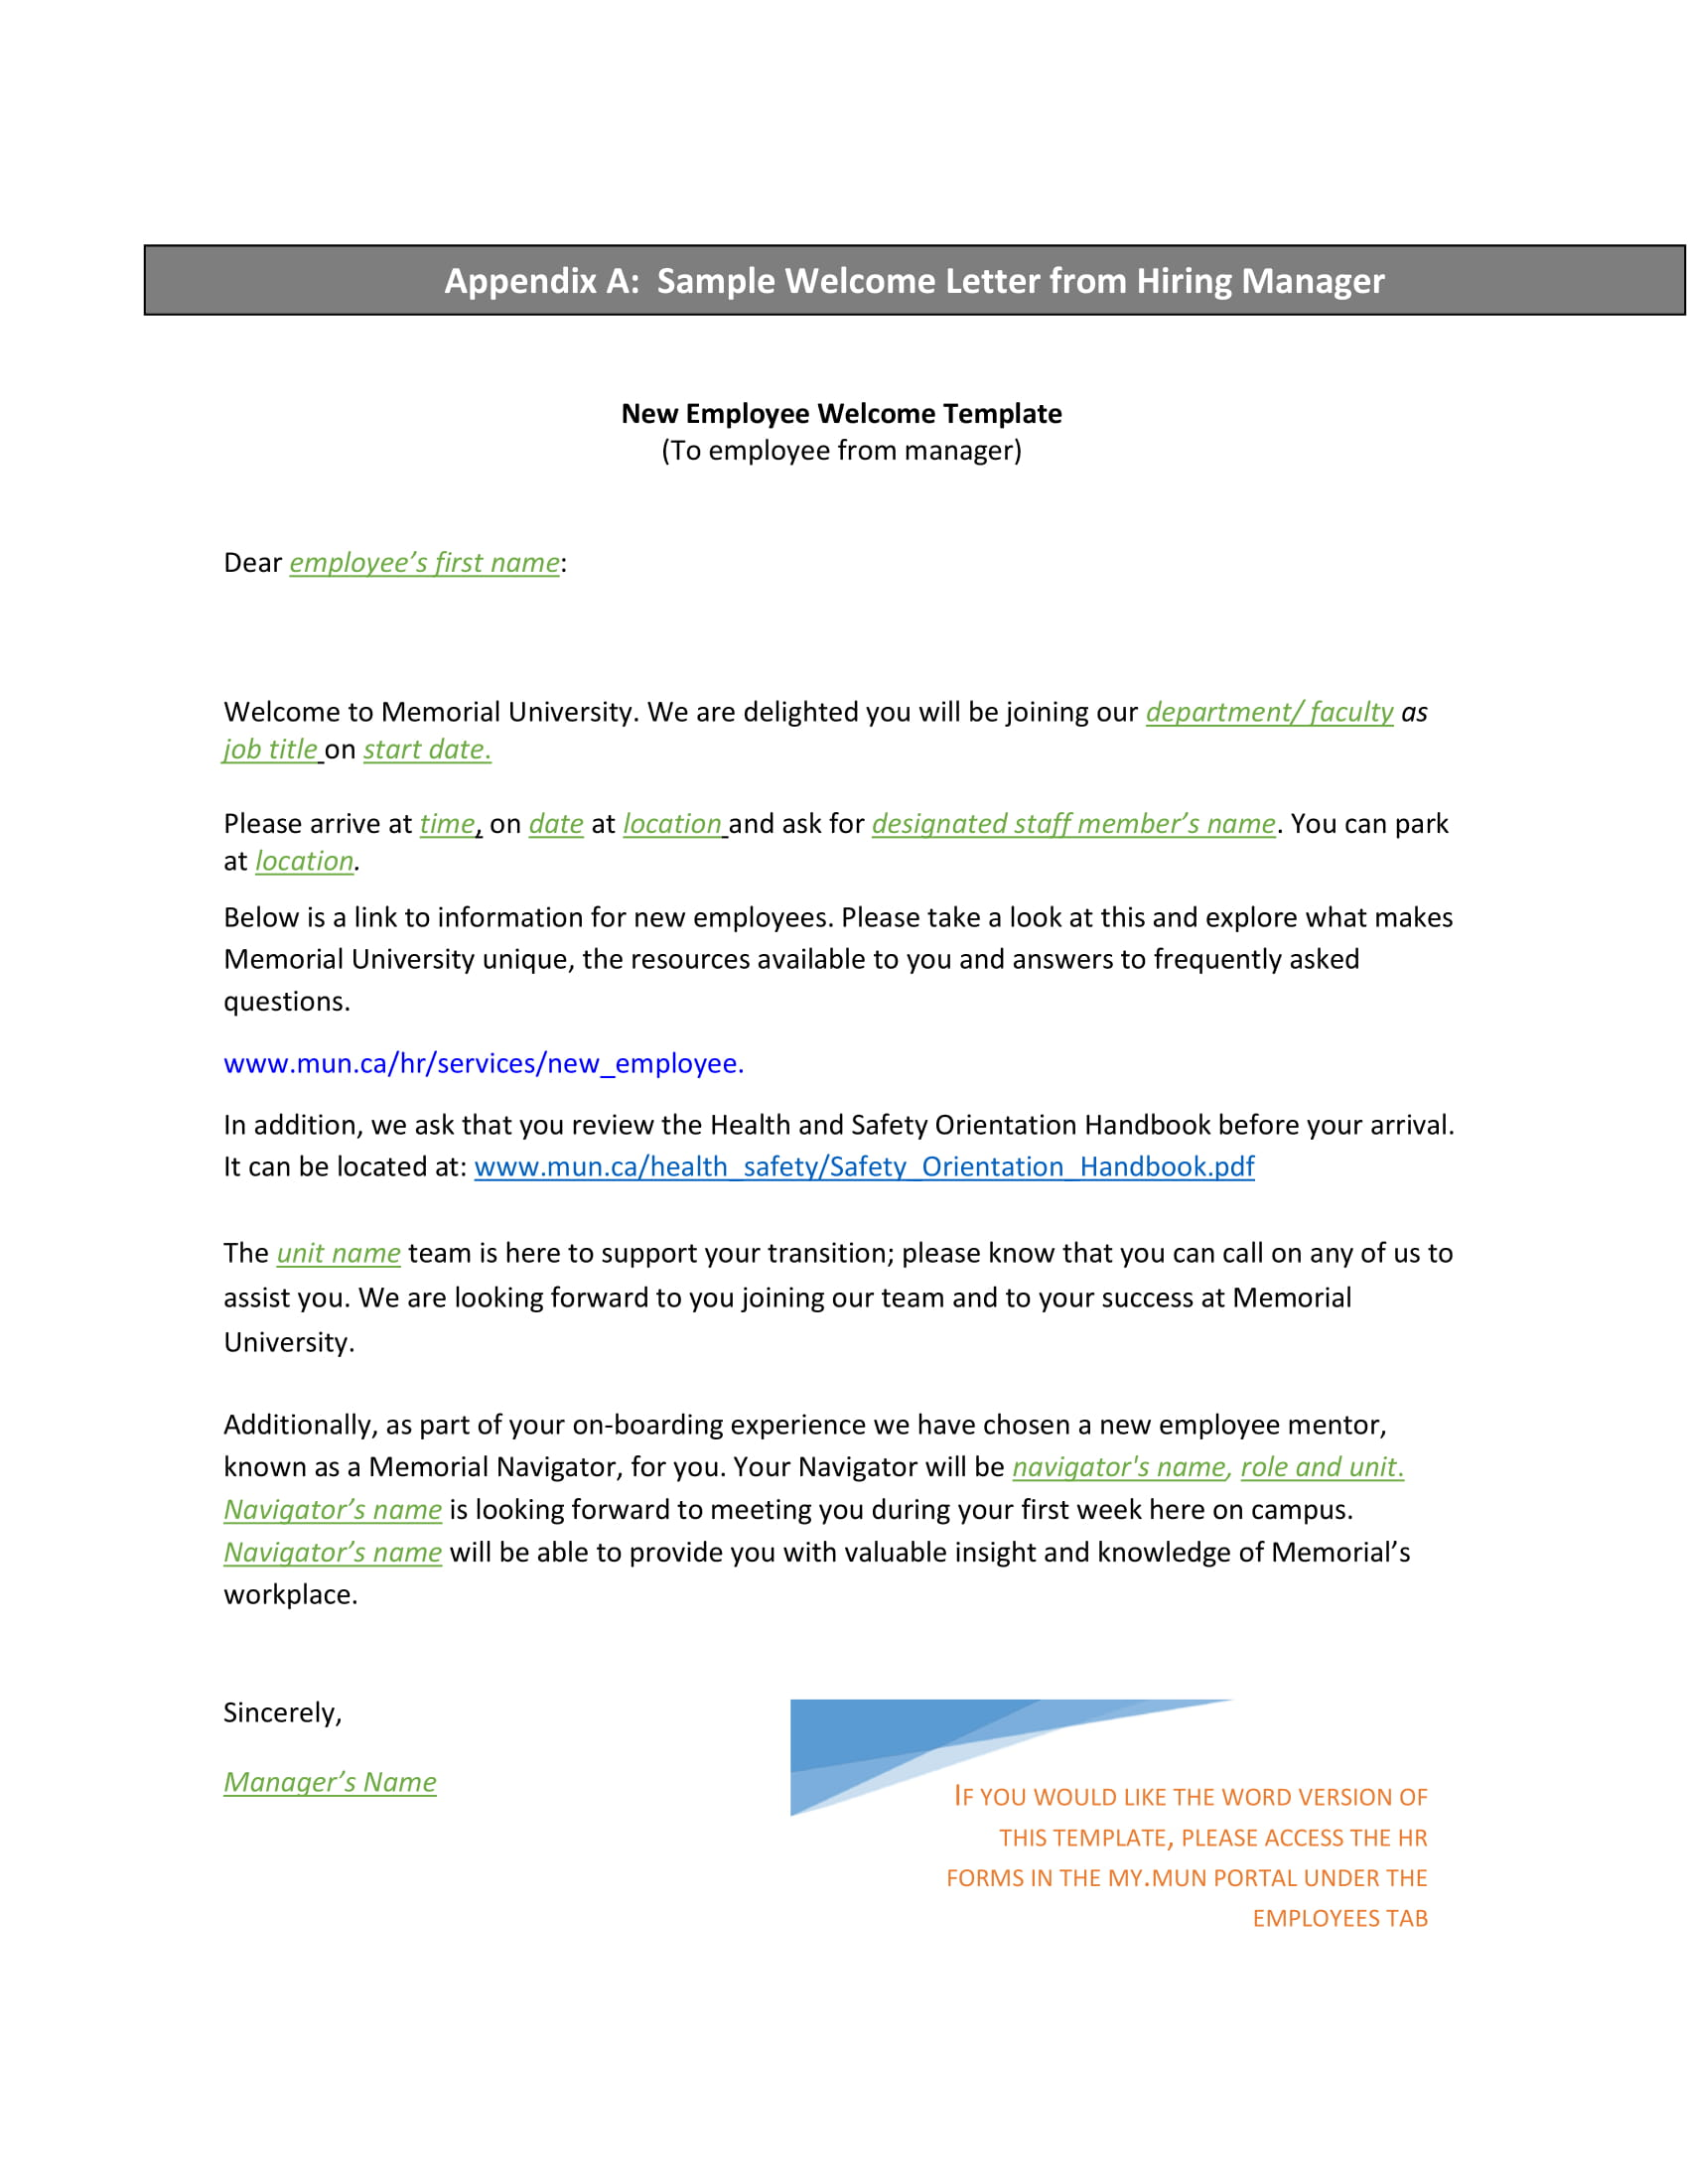 9+ New Hire Welcome Letter Examples - PDF | Examples